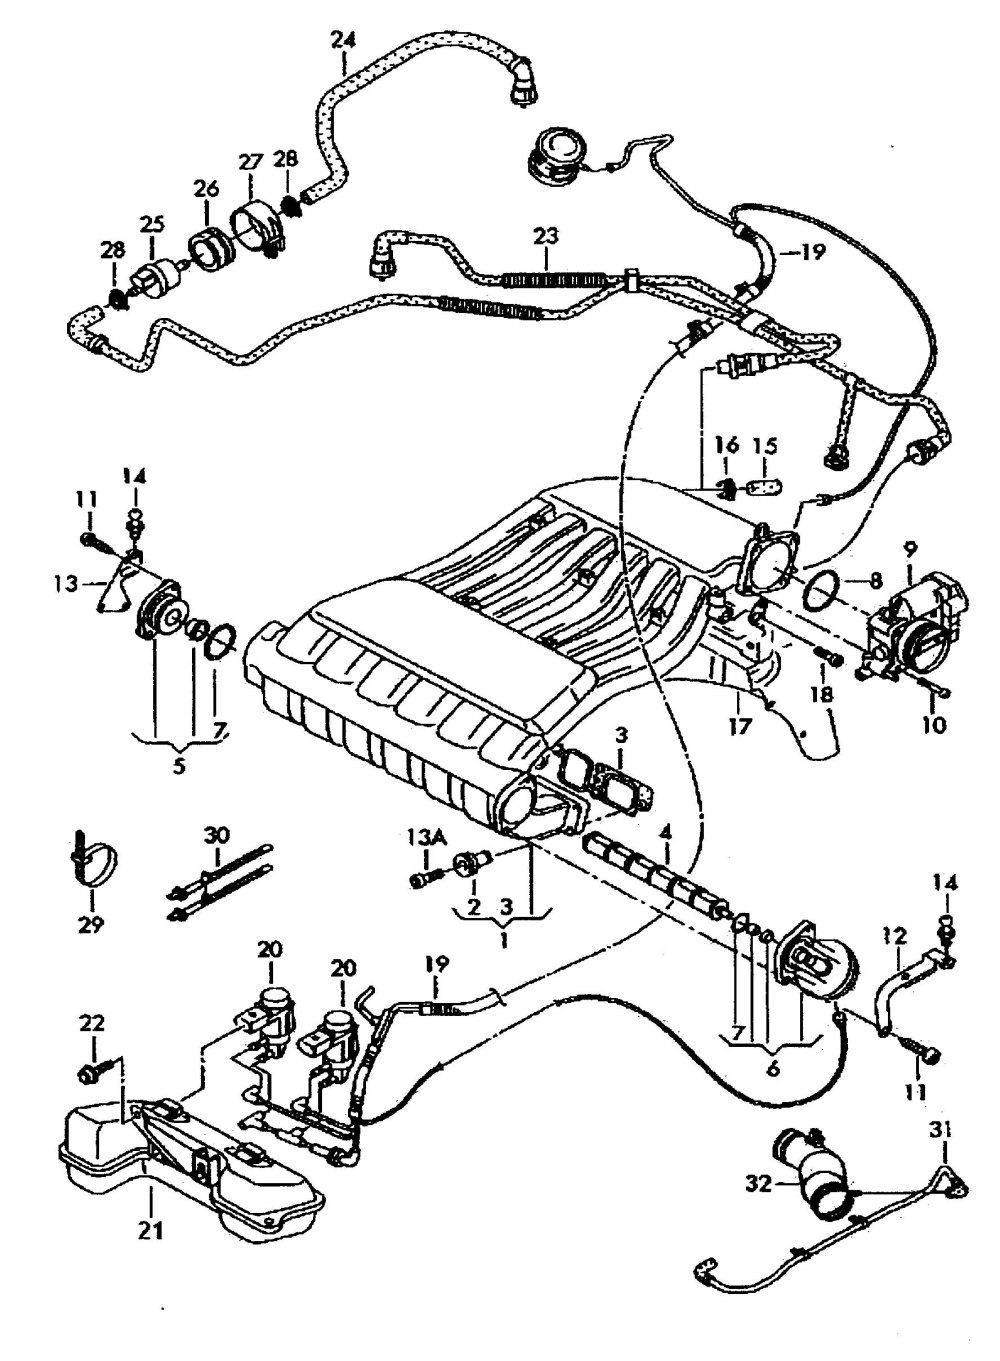 medium resolution of 24v vr6 jetta engine diagram wiring diagram yer 24v vr6 engine diagram 4 manualuniverse co